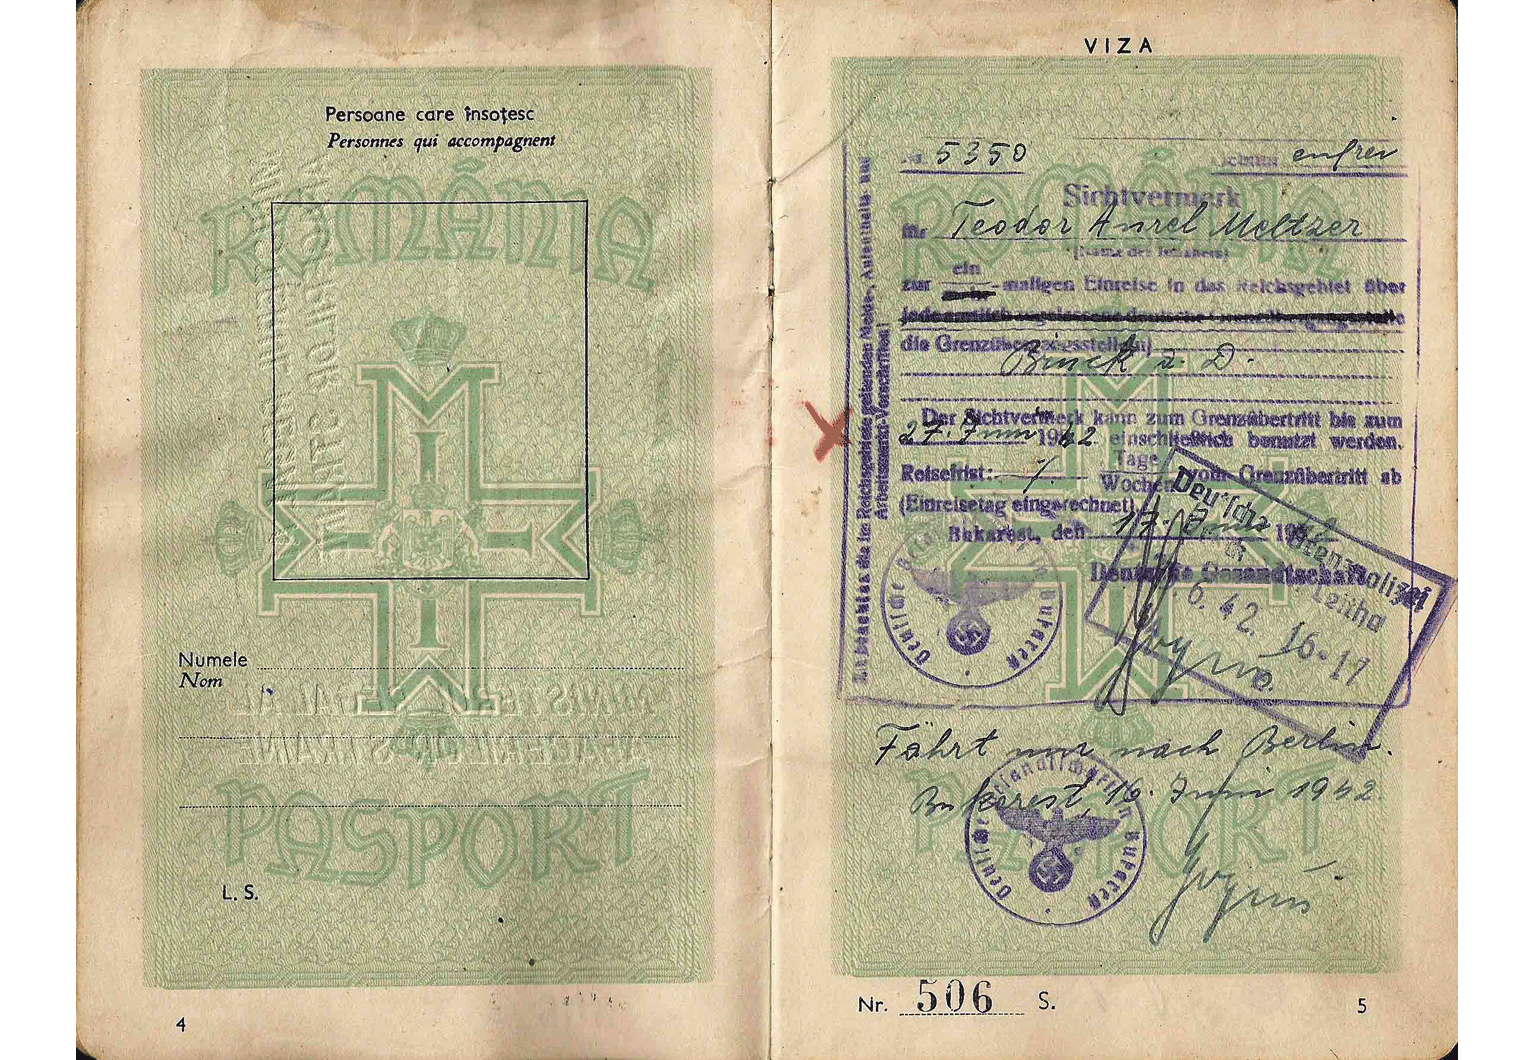 Another WW2 Service passport